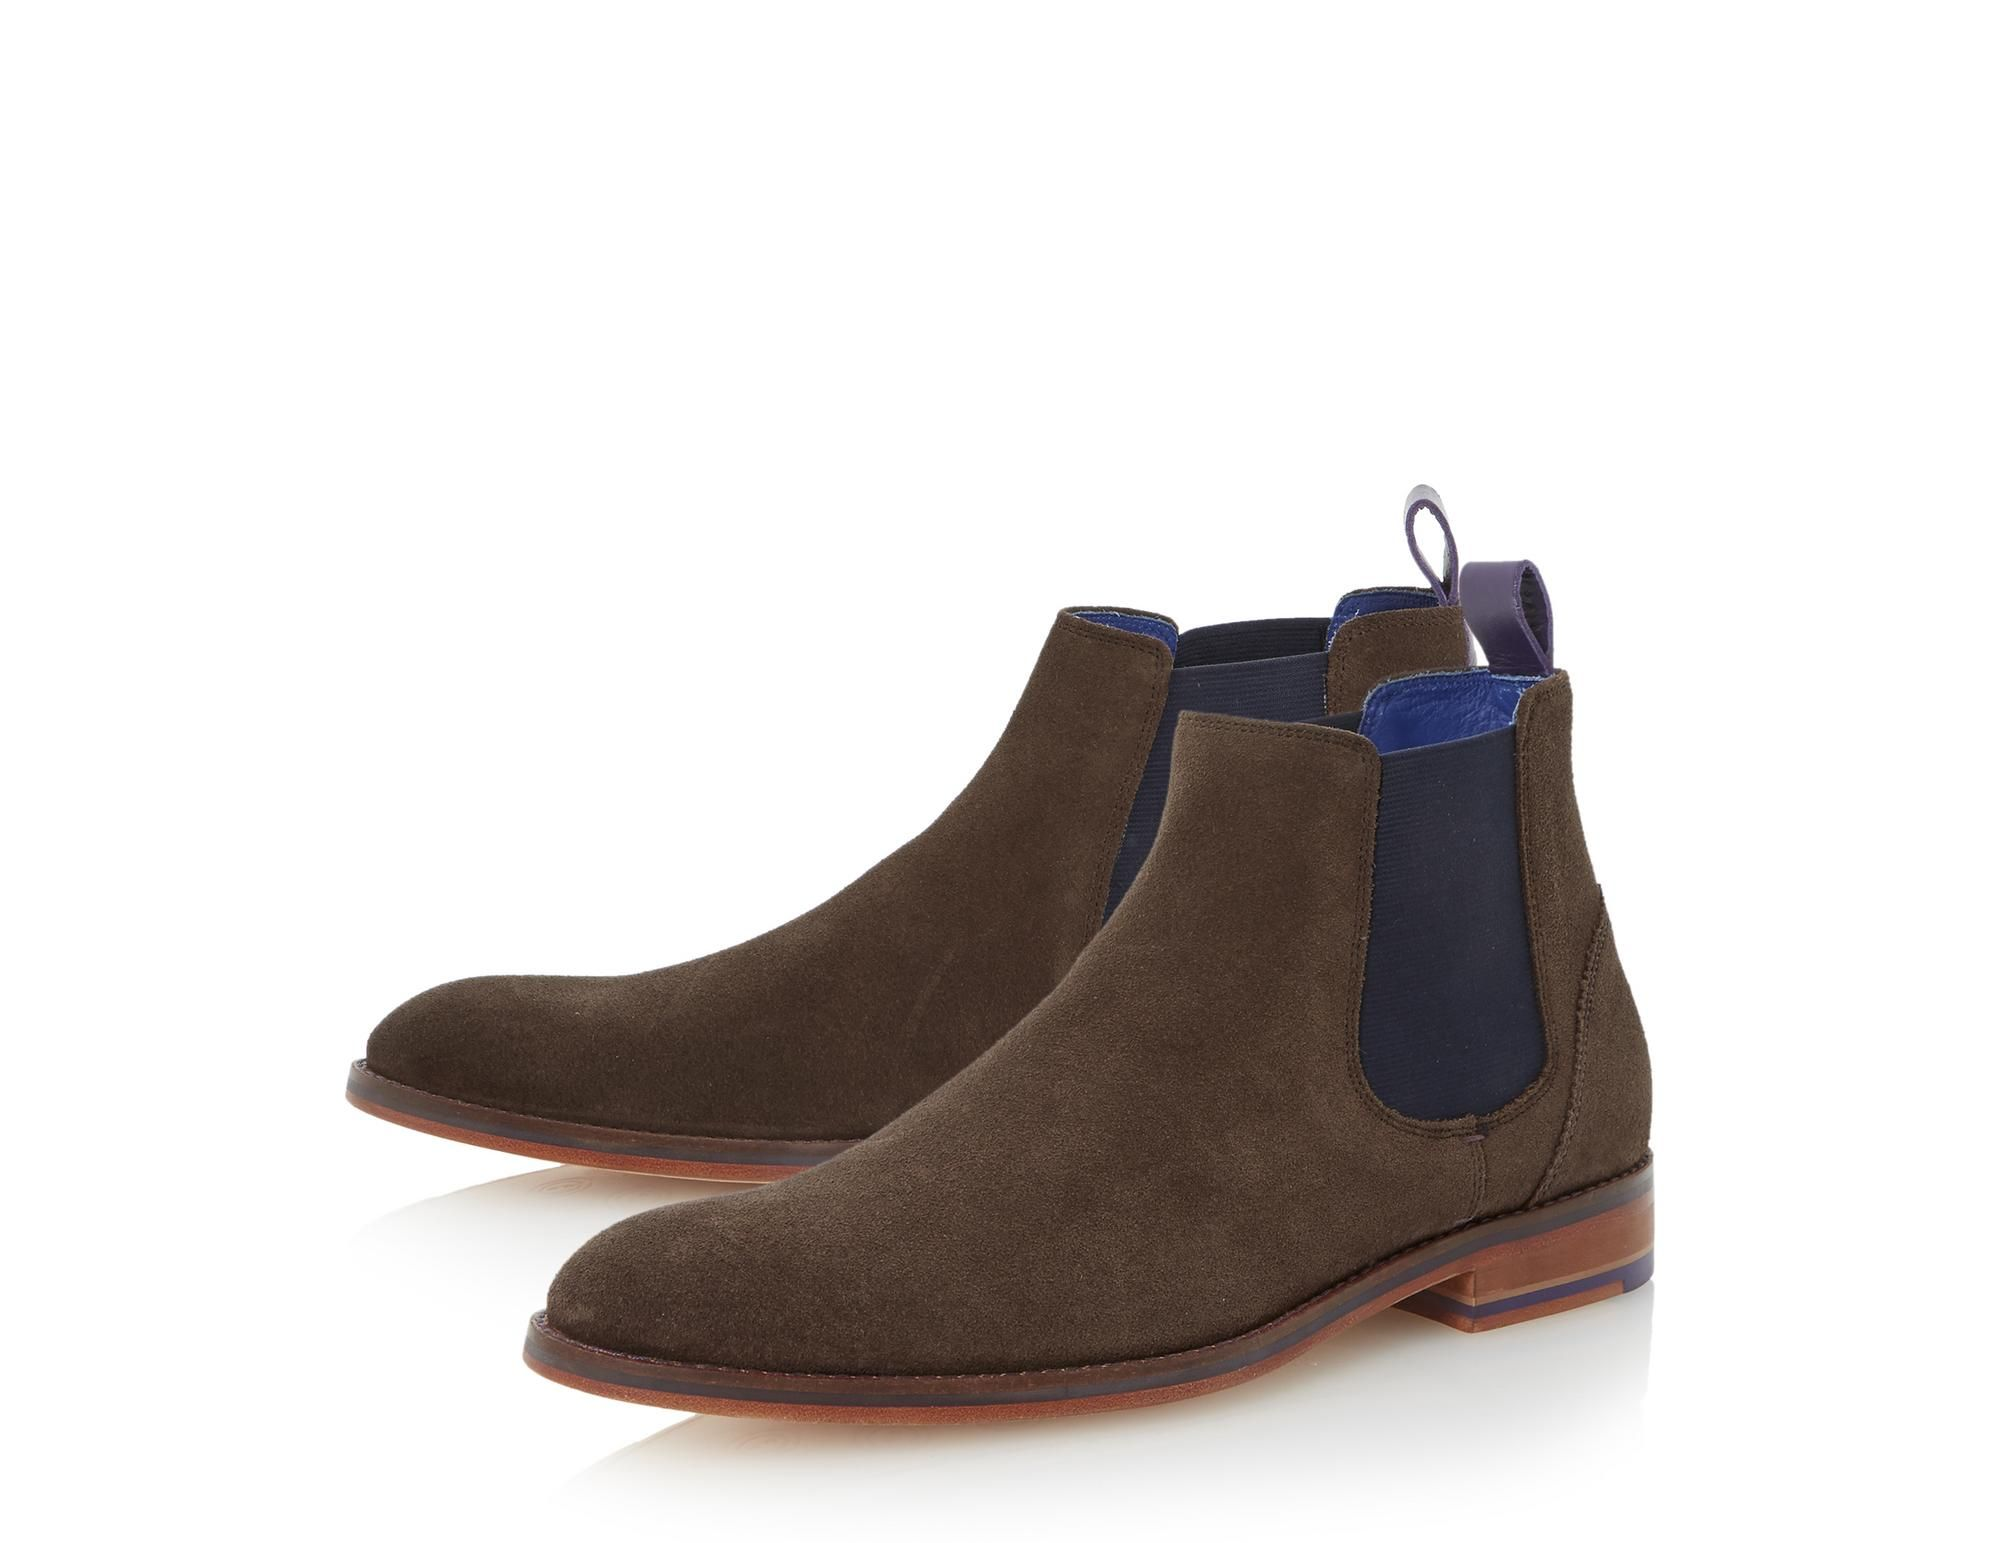 Ted Baker Mens Camroon Suede Chelsea Boot With Contrasting Panels